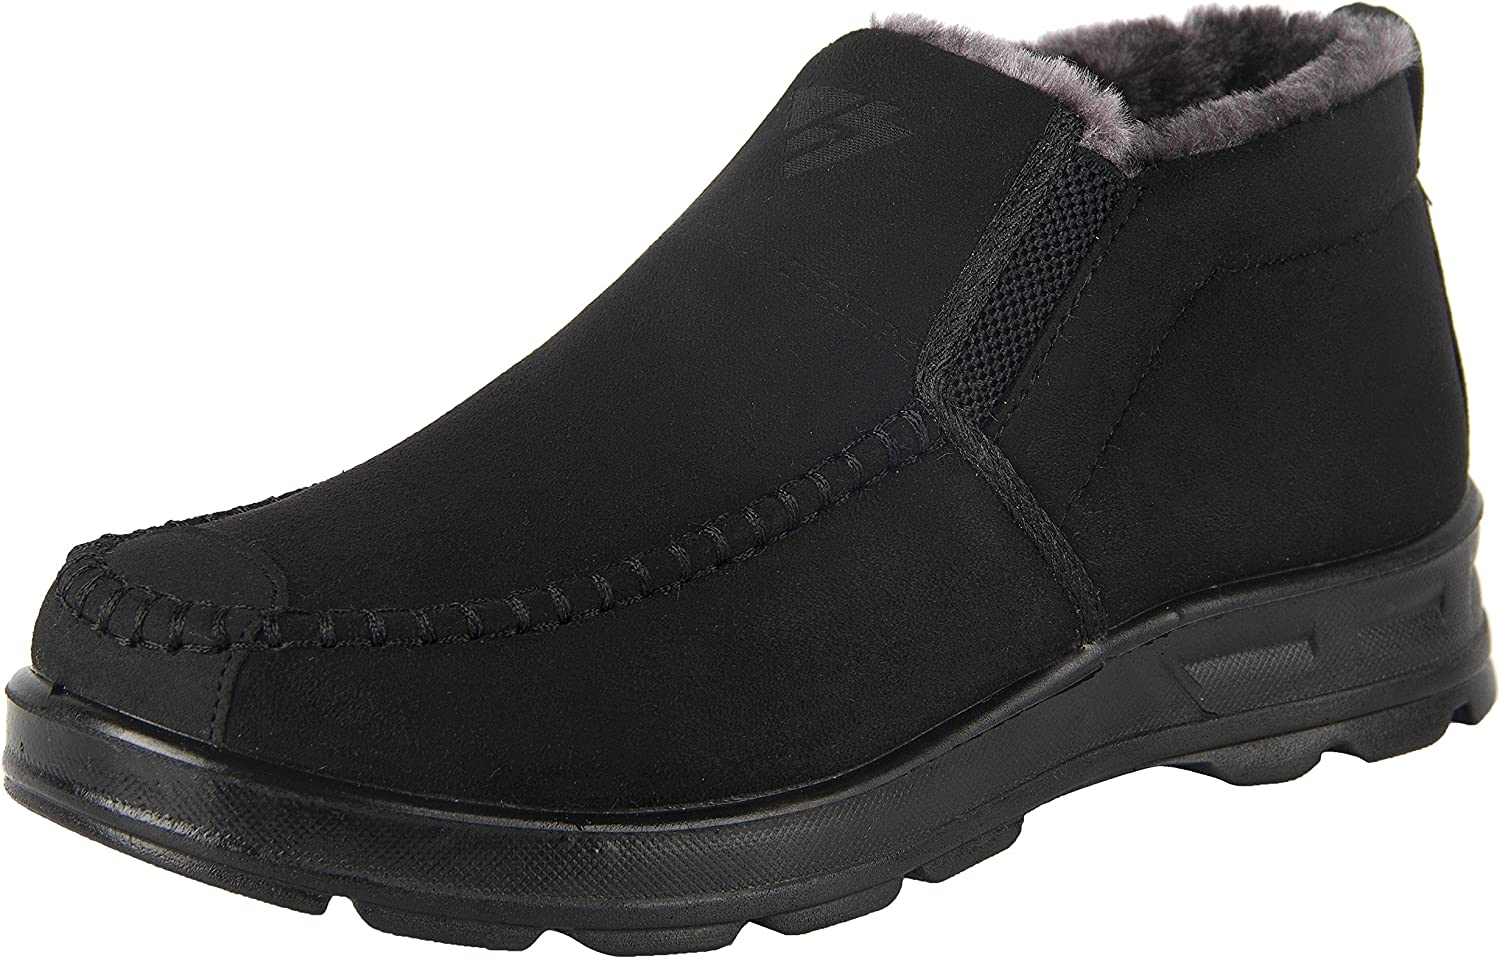 iLoveSIA Mens Warm Fur Lining Winter Outdoor Casual Snow Ankle Boots